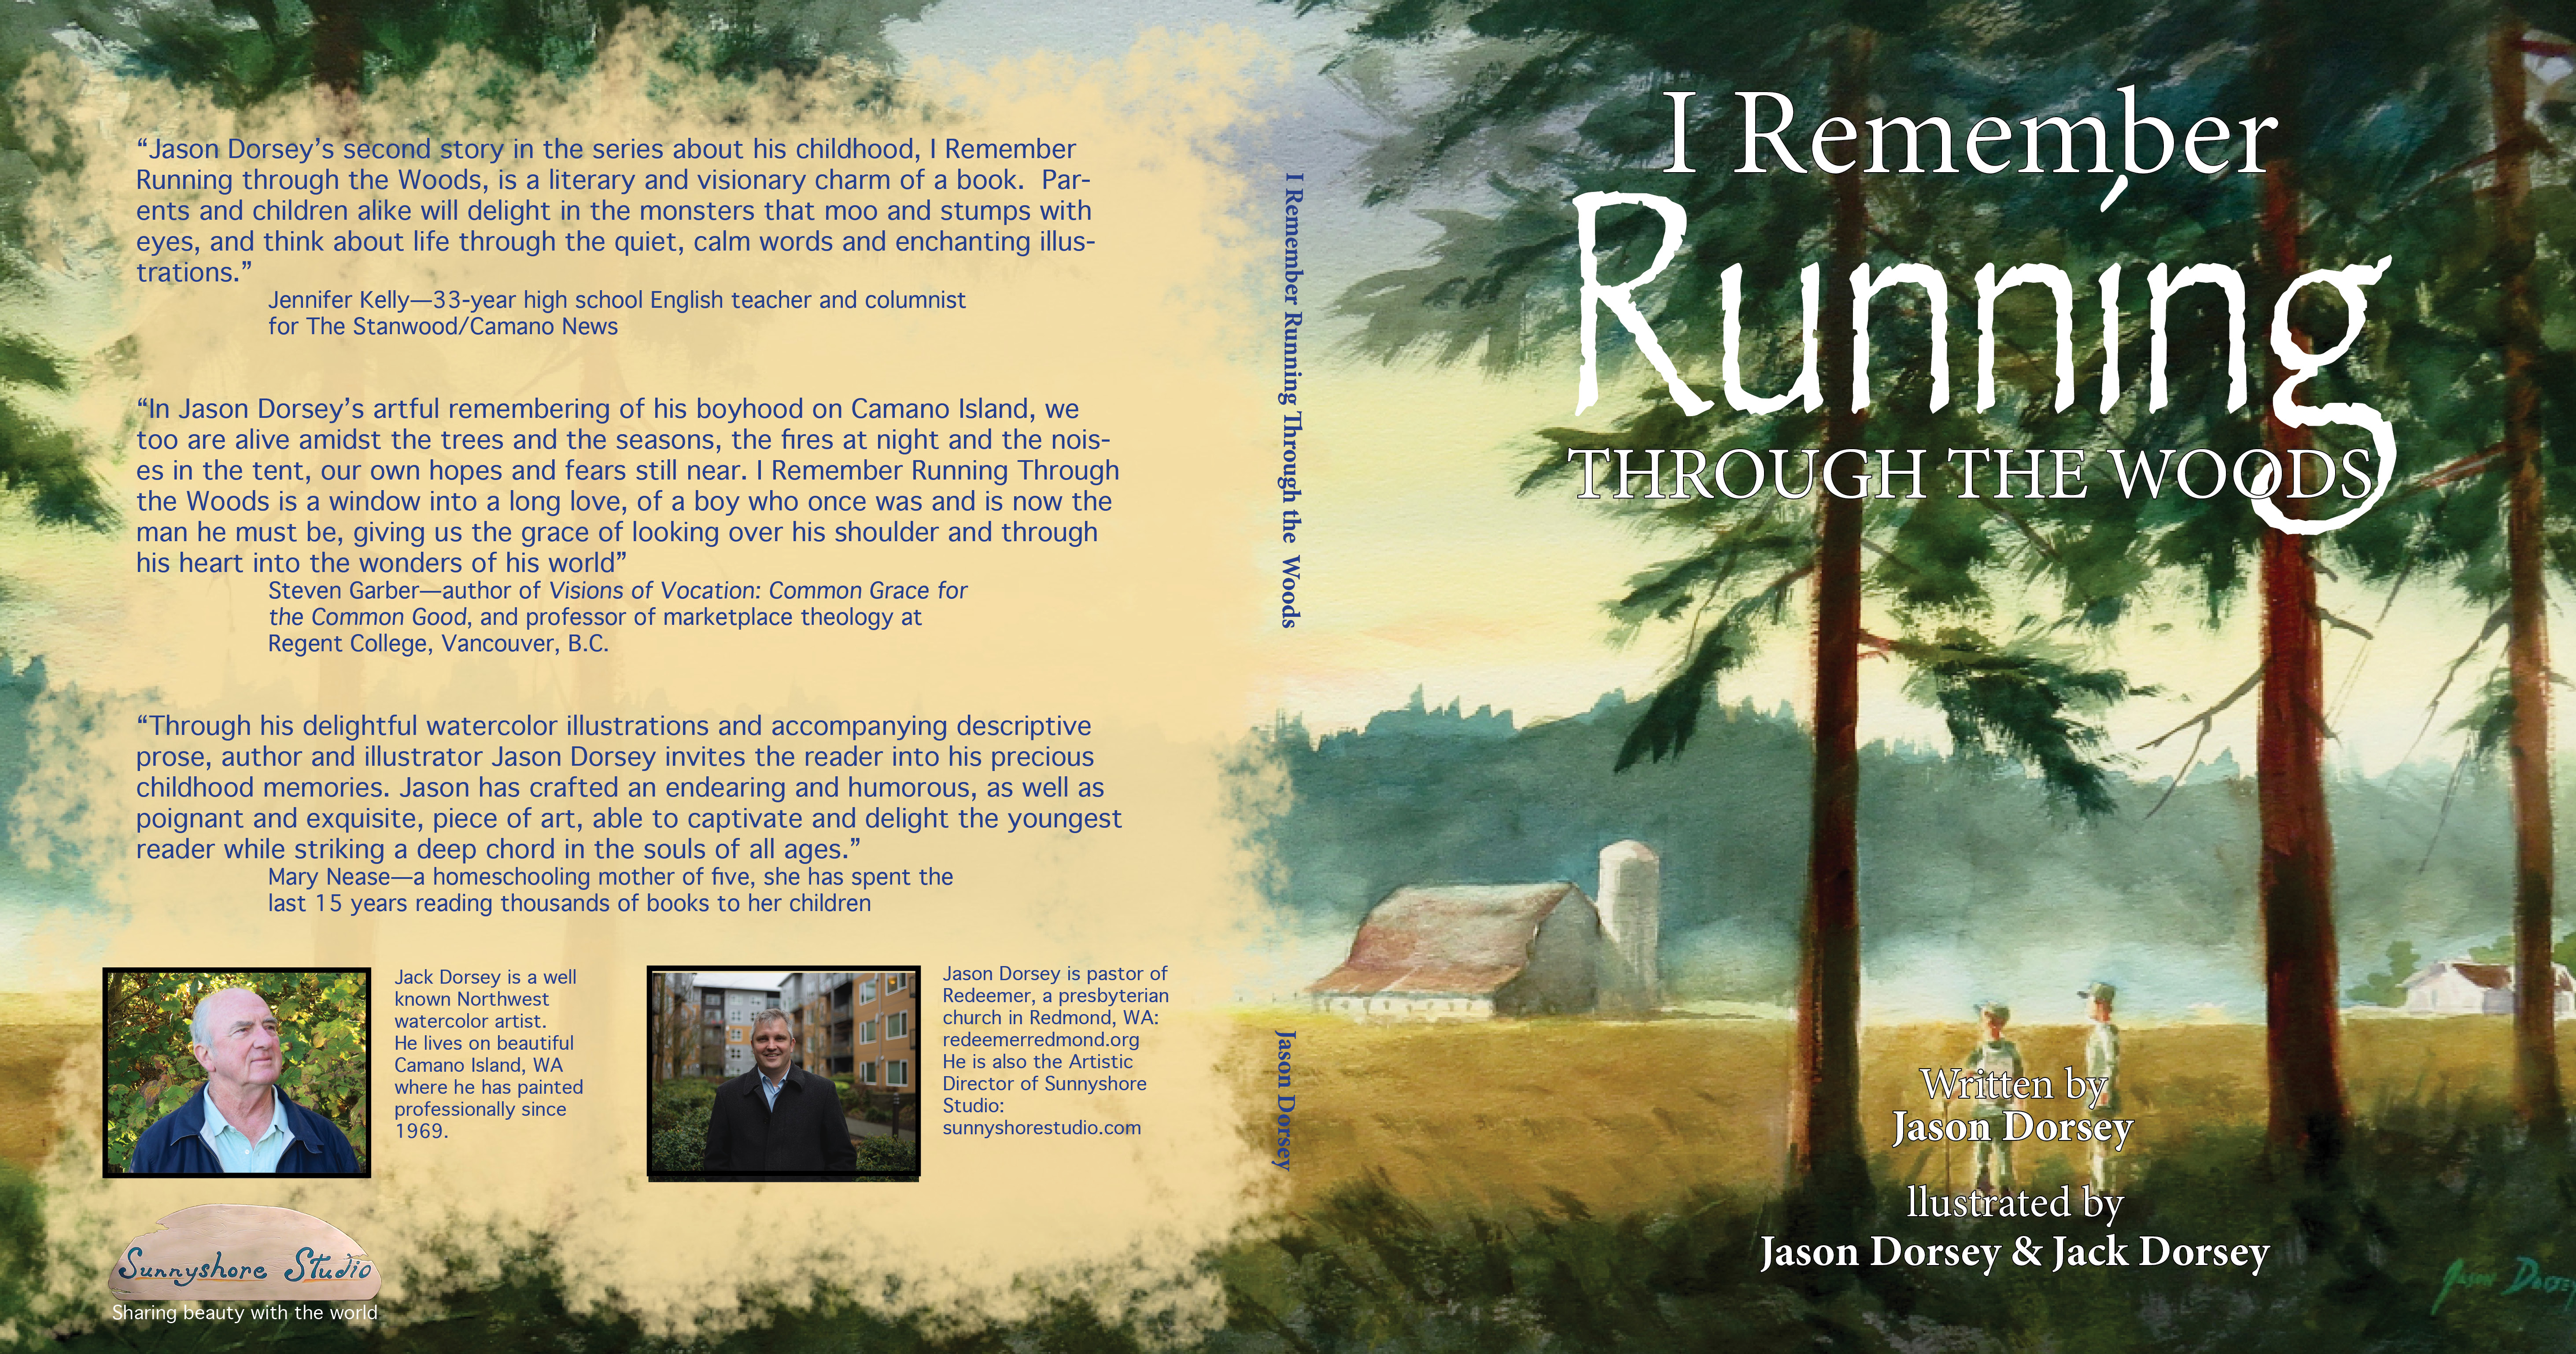 """24 Days Late the 2nd book in """"I Remember"""" series sent to printer"""